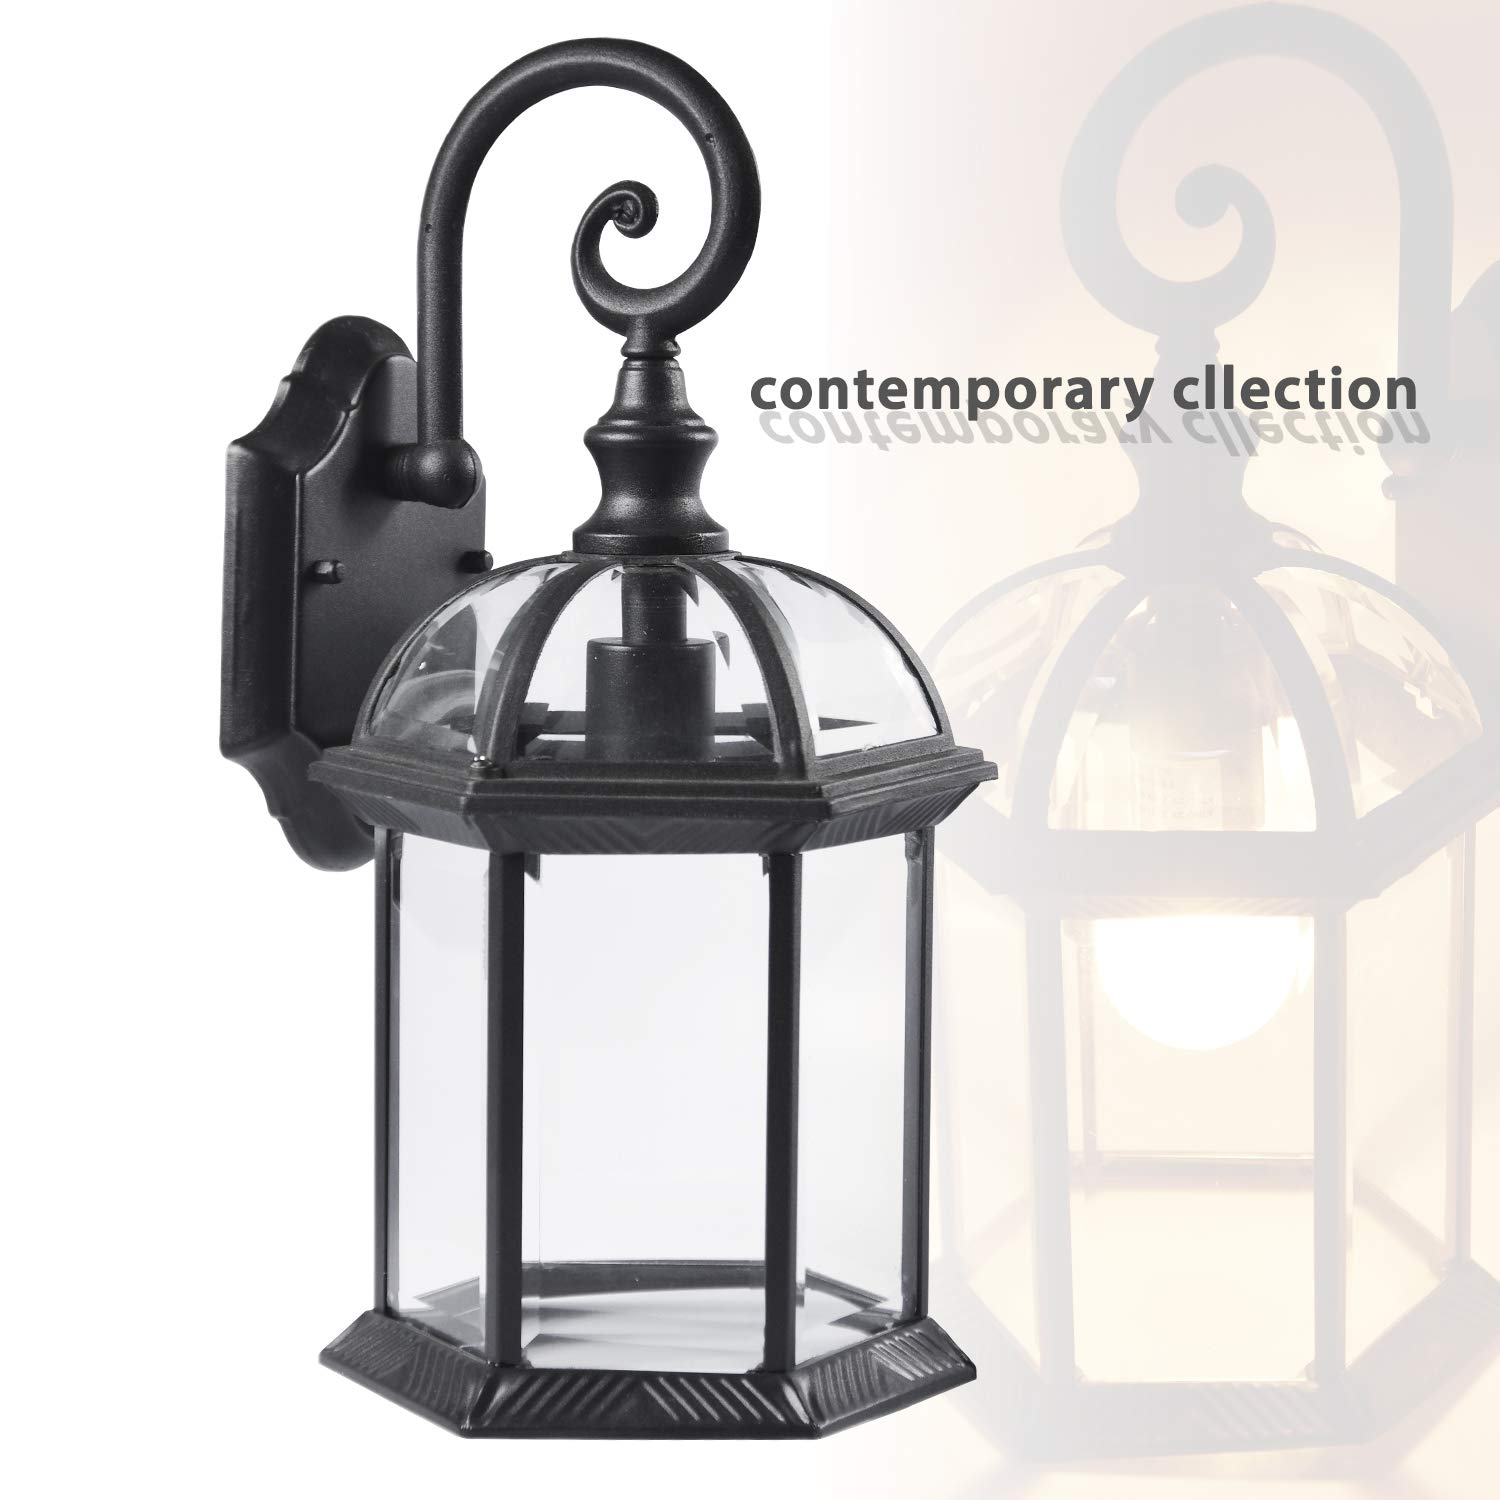 ETOPLIGHTING Contemporary Collection Exterior Outdoor Wall Lantern with Beveled Clear Glass APL1020 by eTopLighting